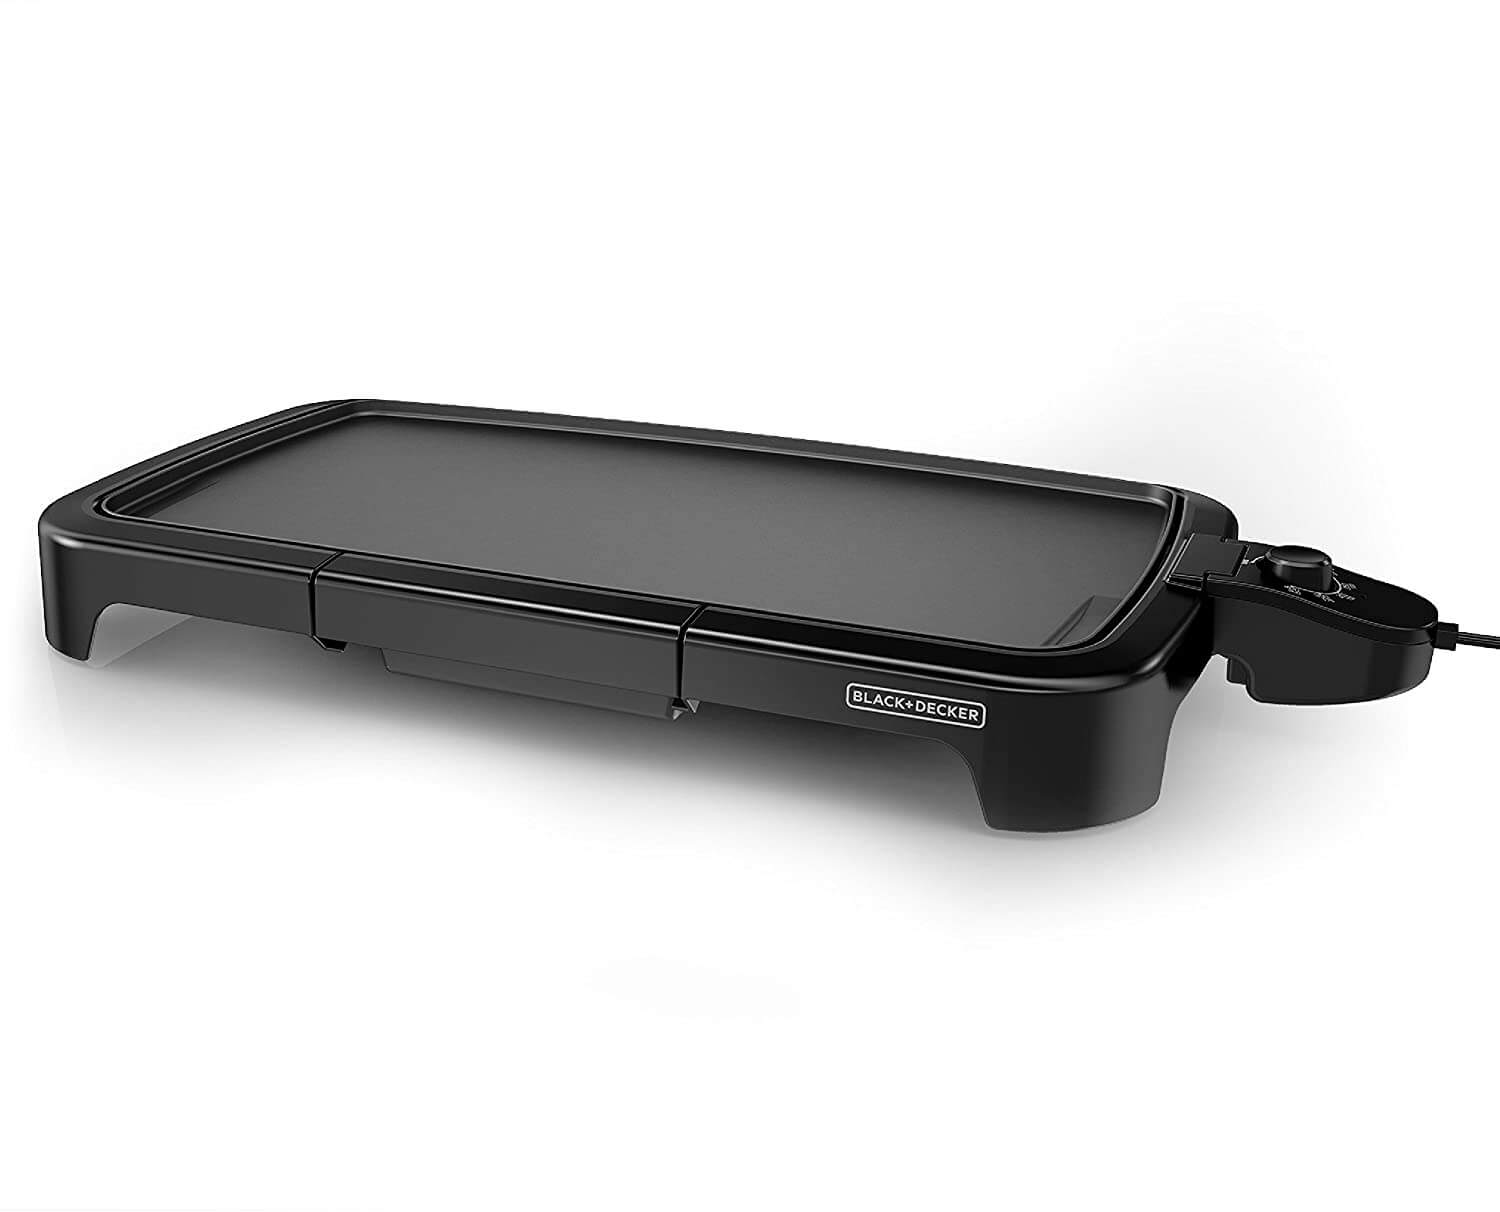 BLACK+DECKER GD2011B Family-Sized Electric Griddle with Drip Tray